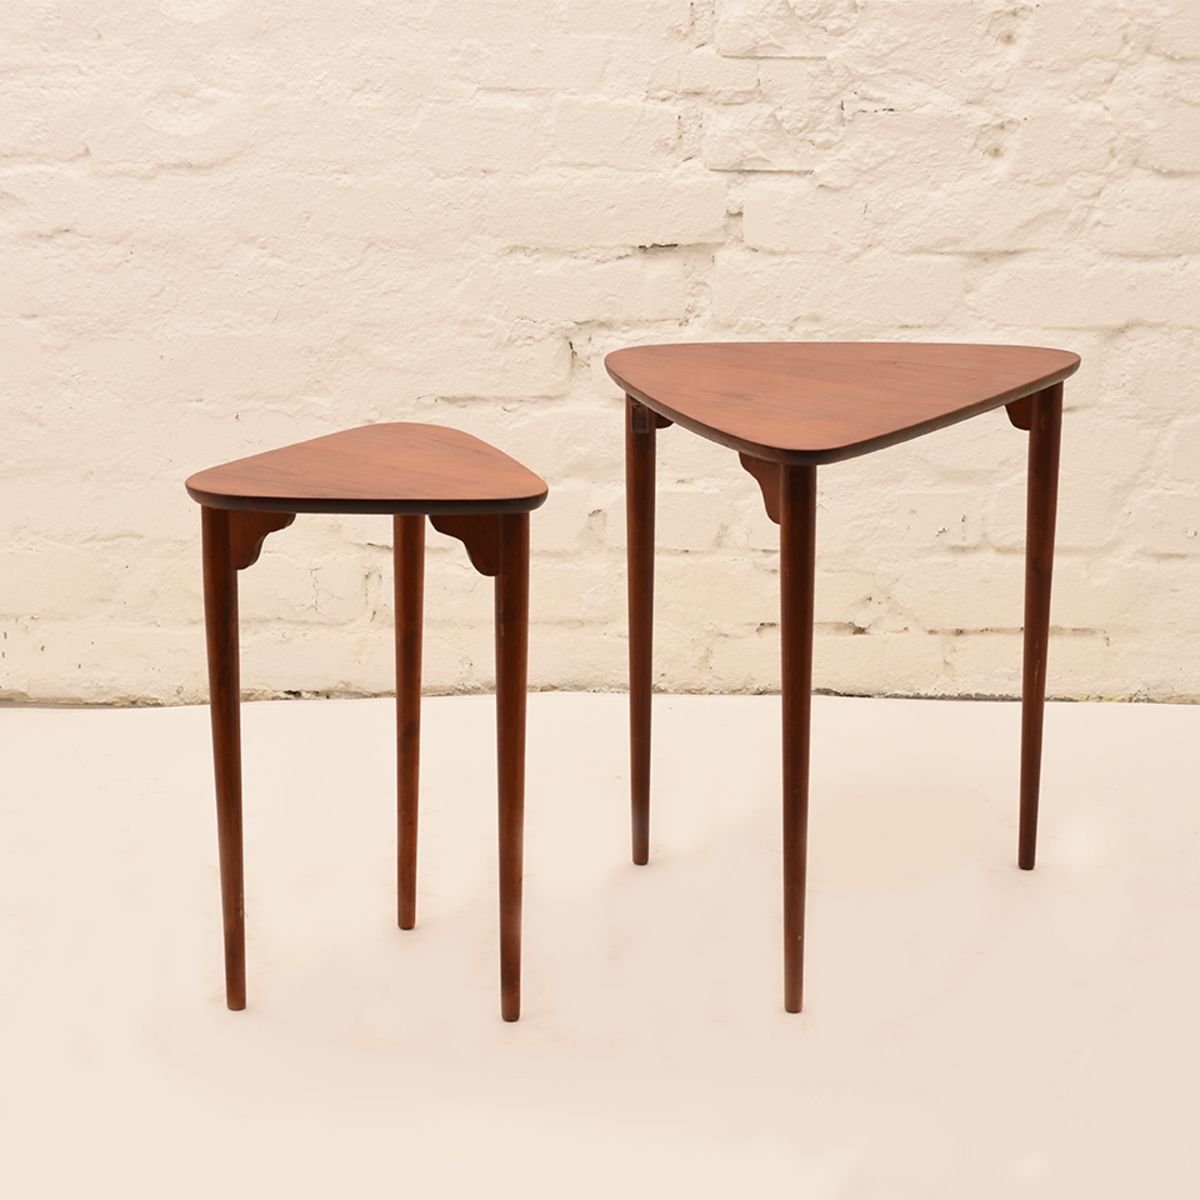 Three-Legged-Nesting-Tables-By-Pori-Ekvall-01